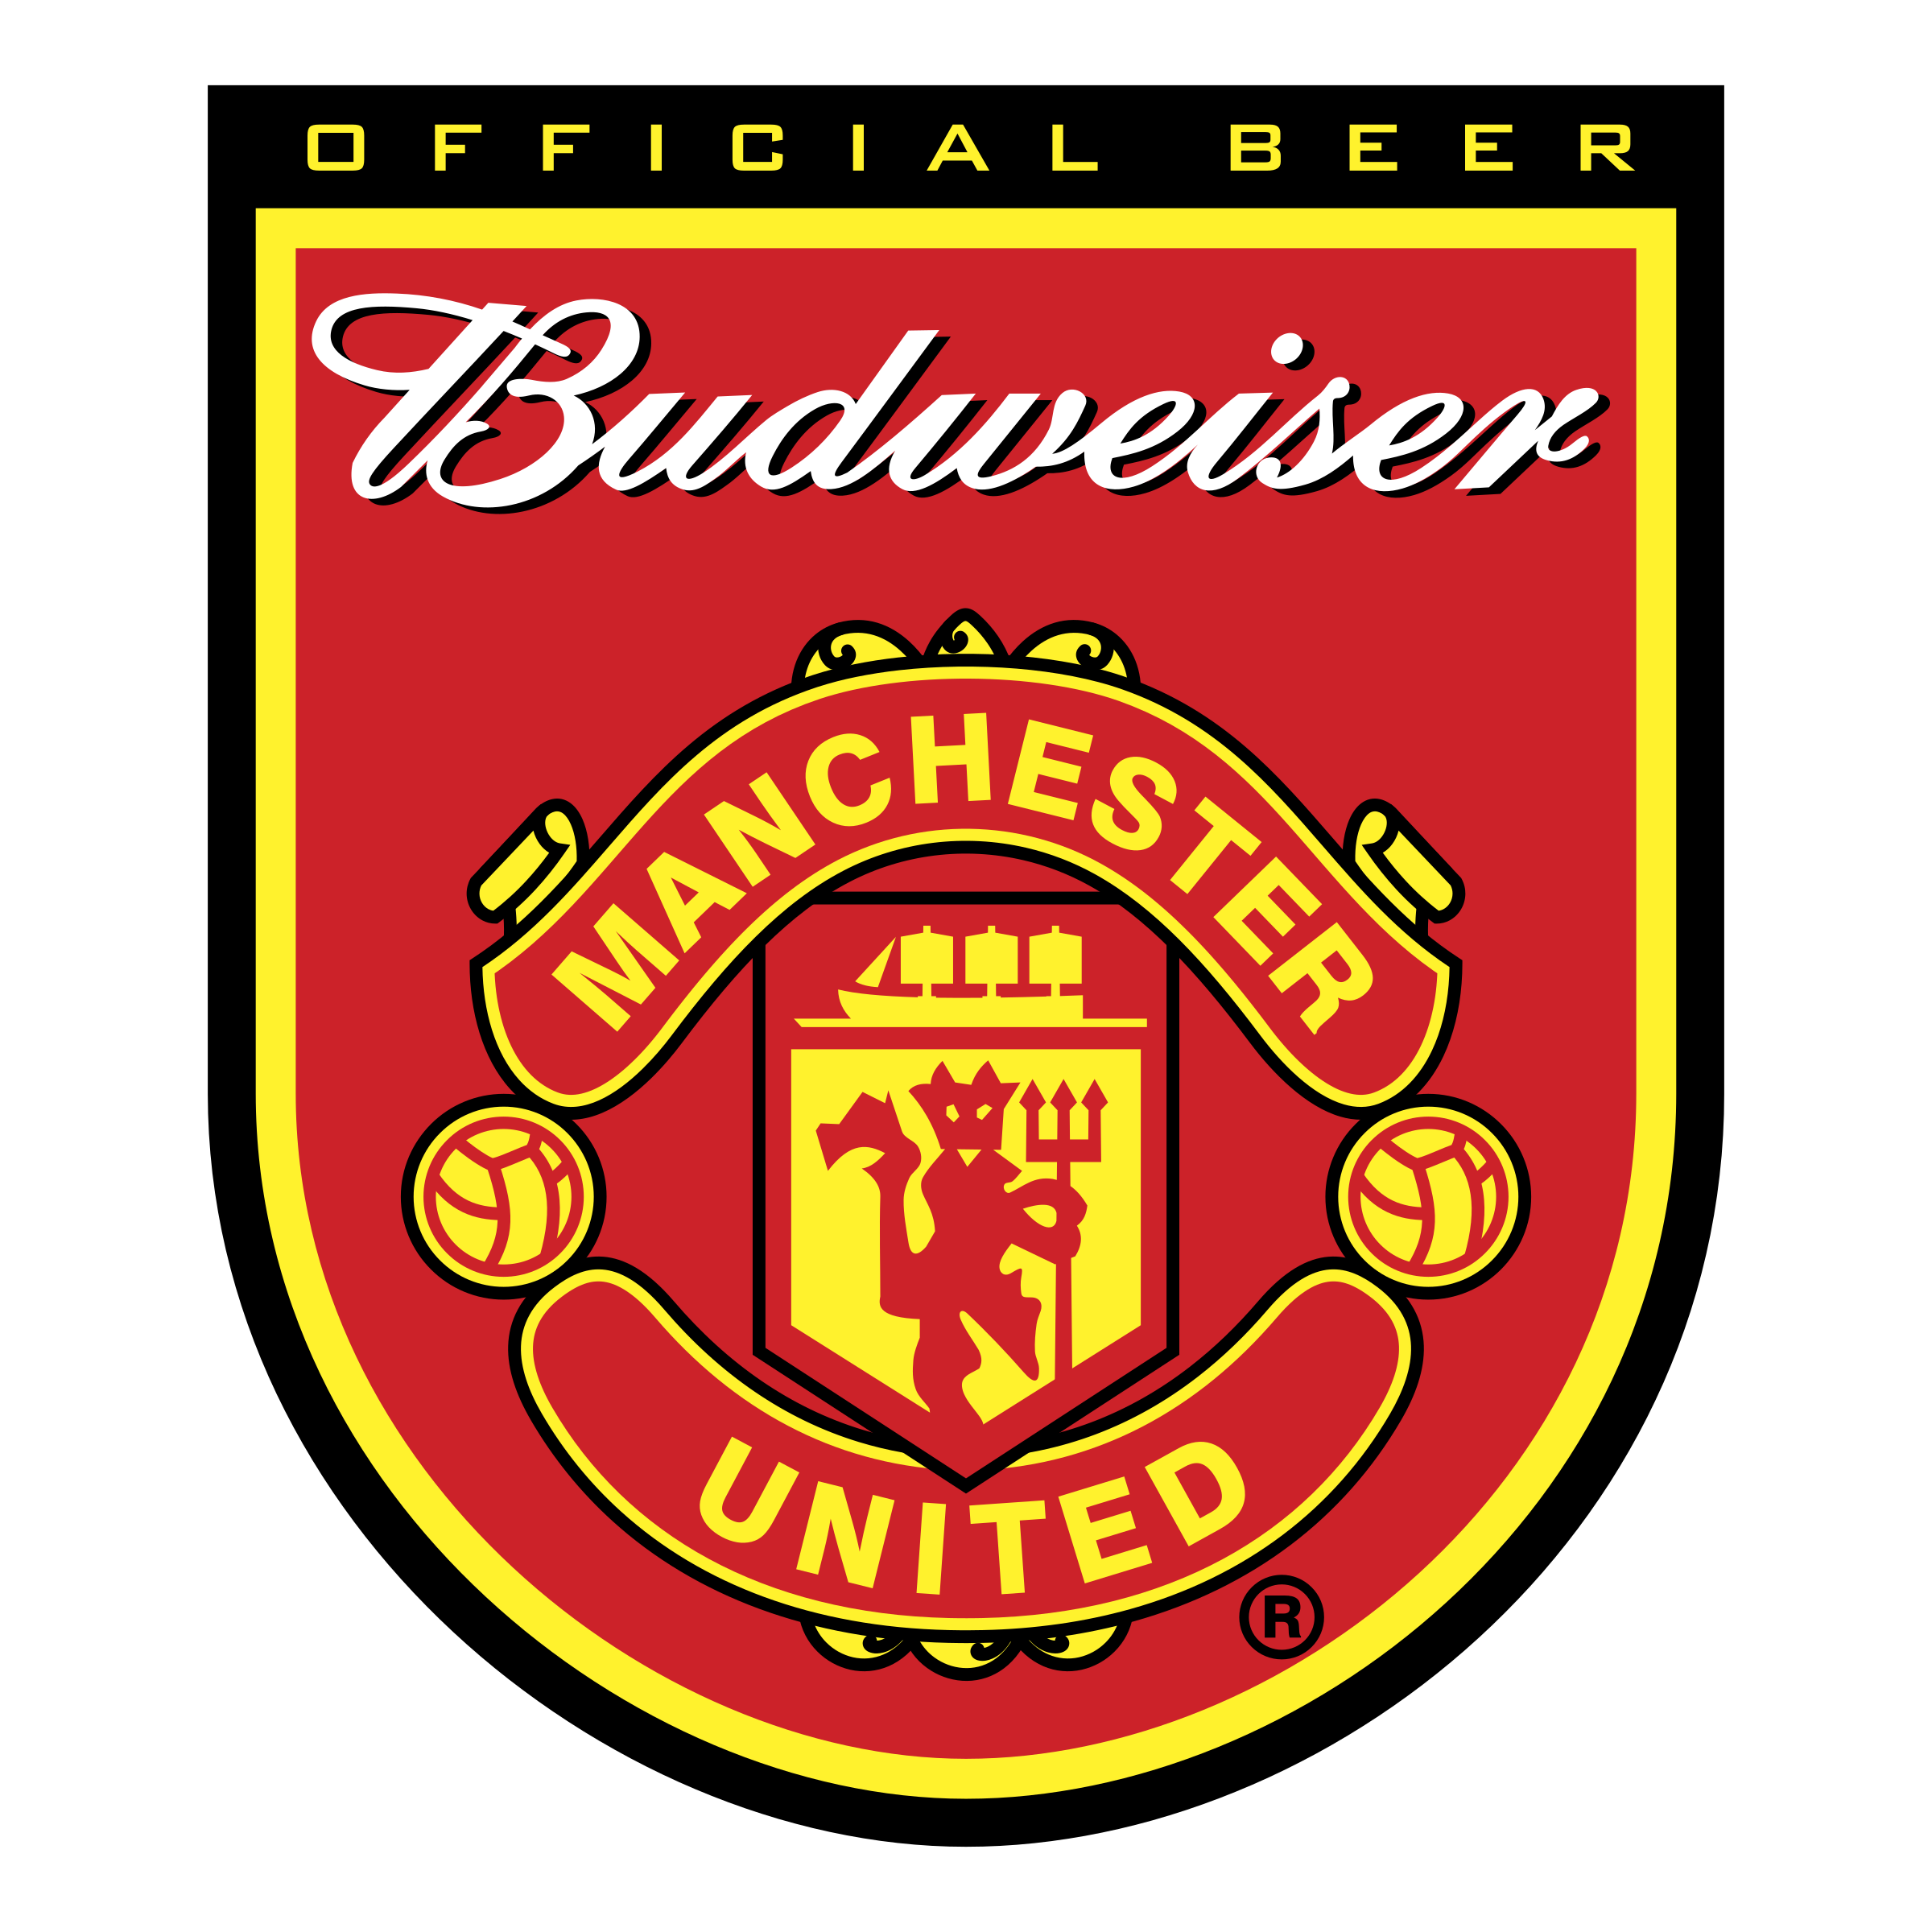 budweiser manchester united logo png transparent svg vector freebie supply budweiser manchester united logo png